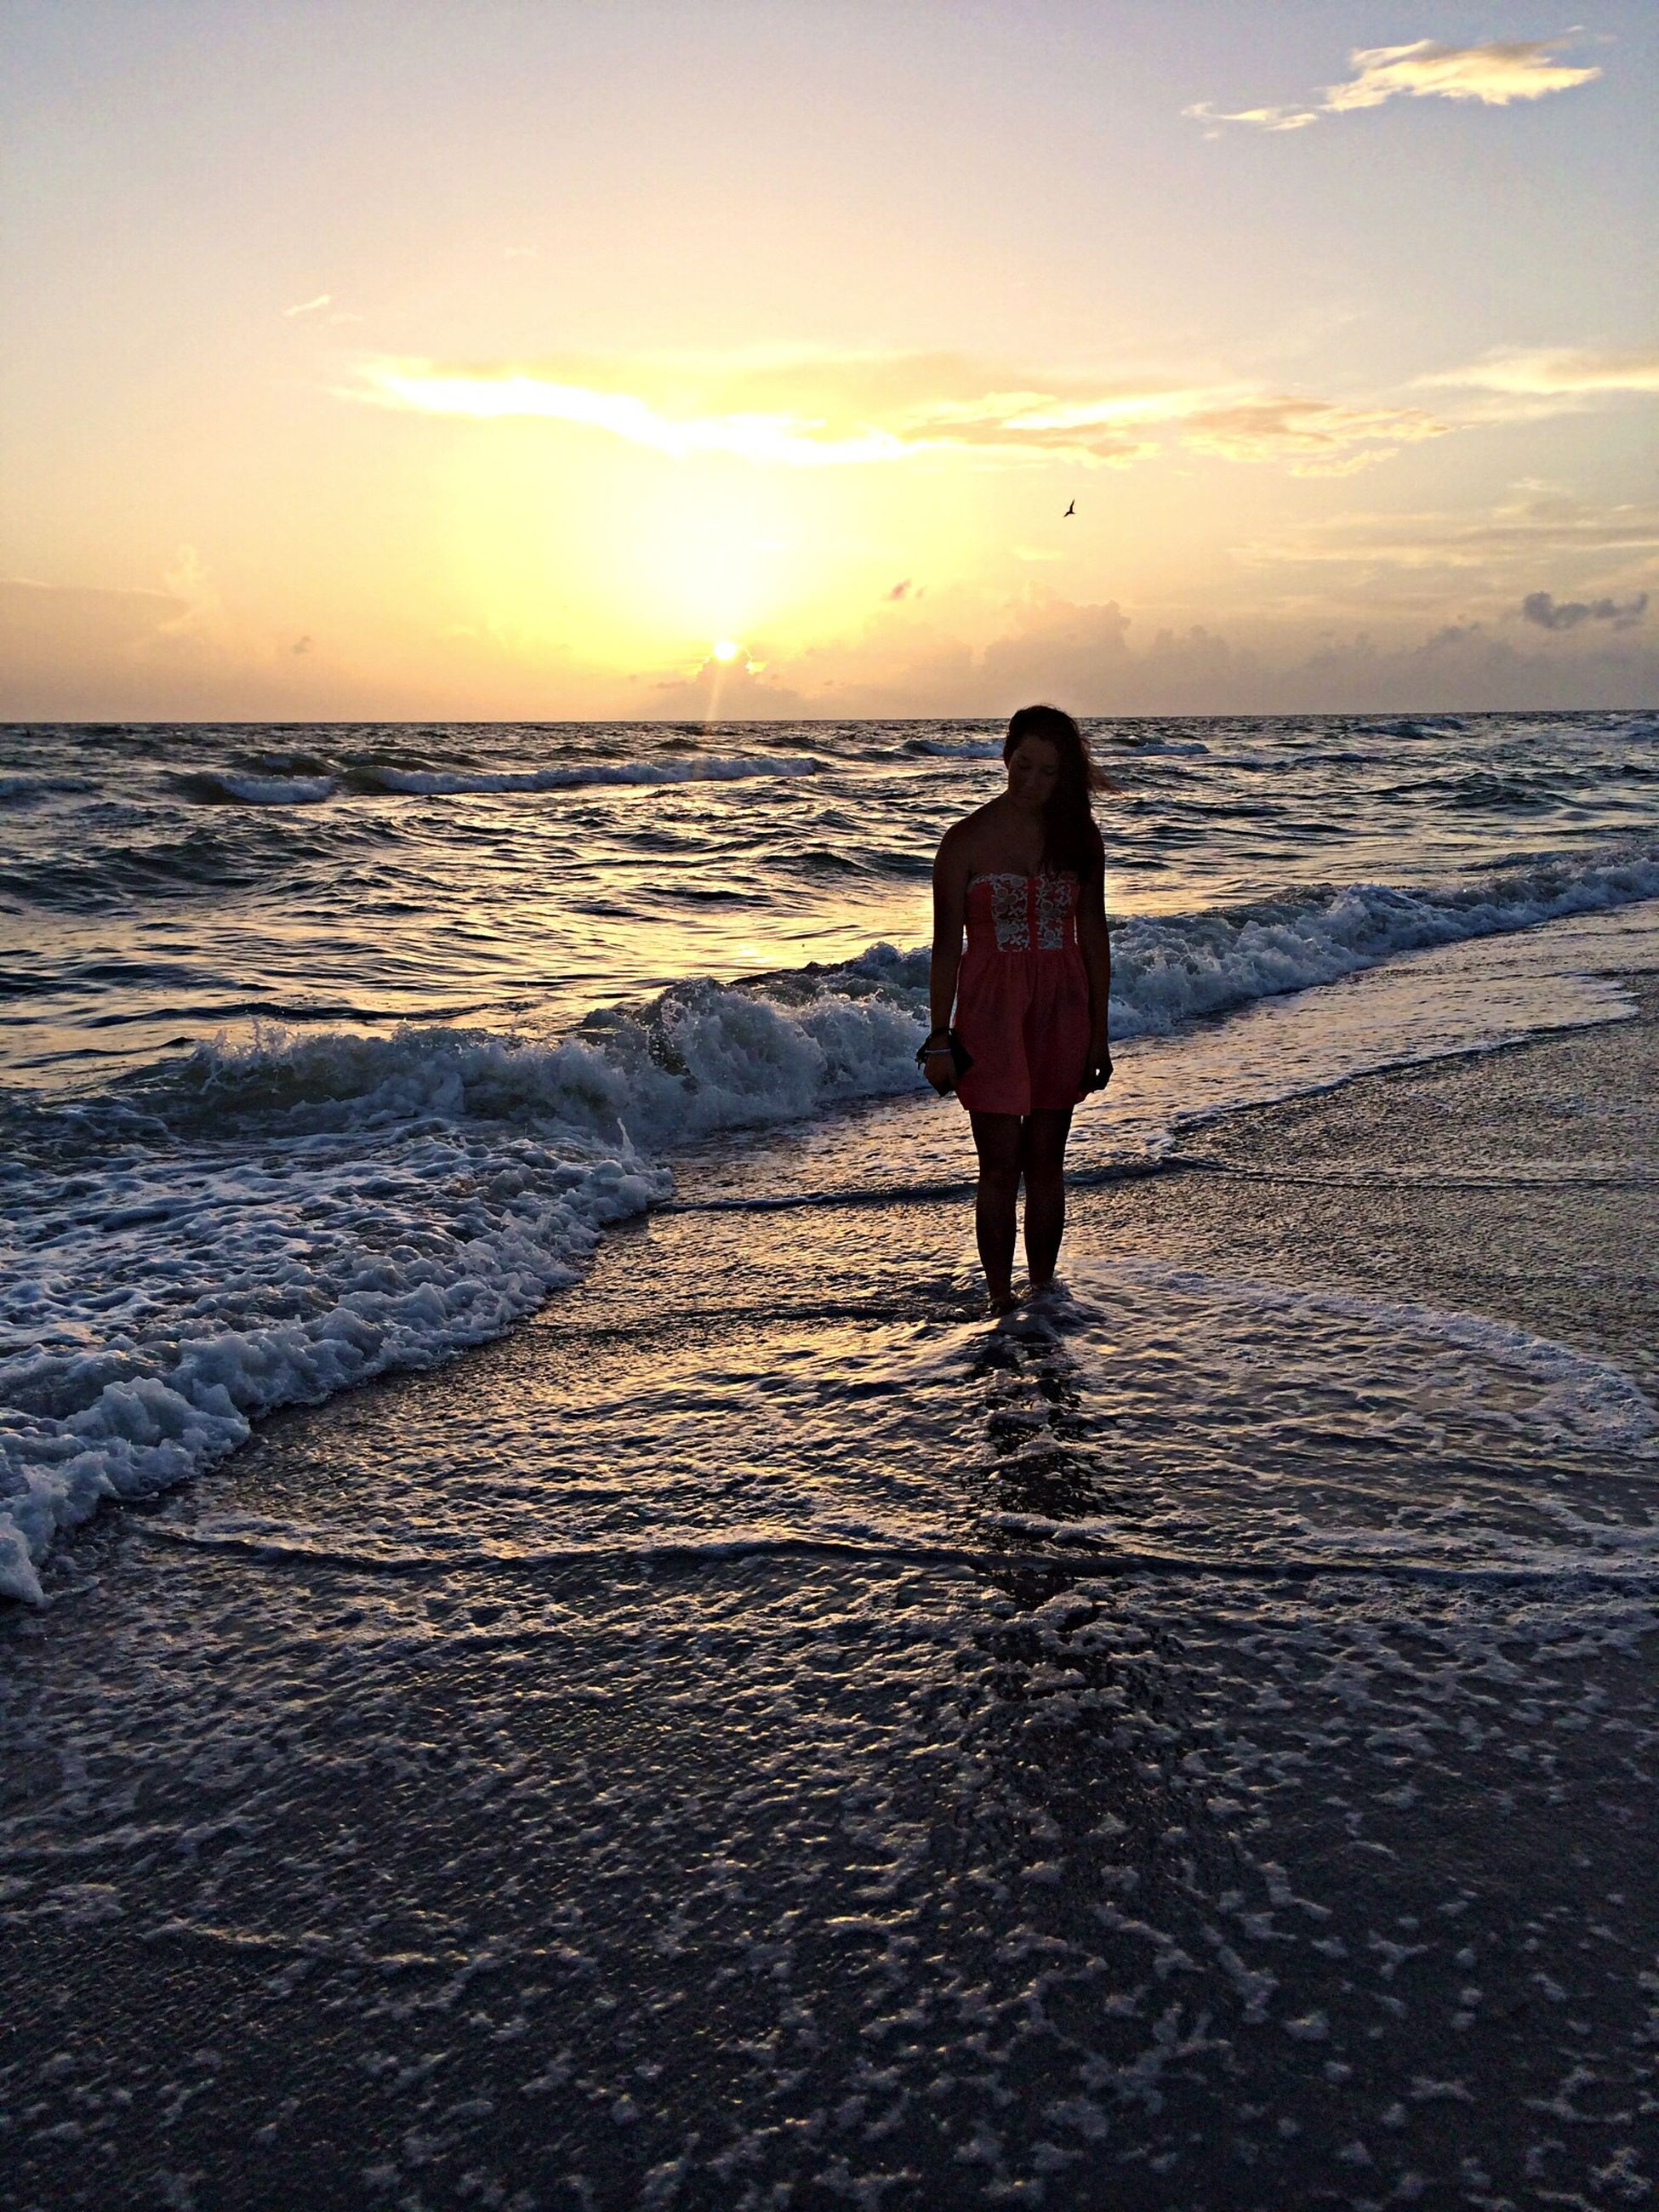 sea, beach, horizon over water, sunset, shore, water, sky, sand, tranquil scene, scenics, tranquility, beauty in nature, lifestyles, leisure activity, standing, rear view, full length, walking